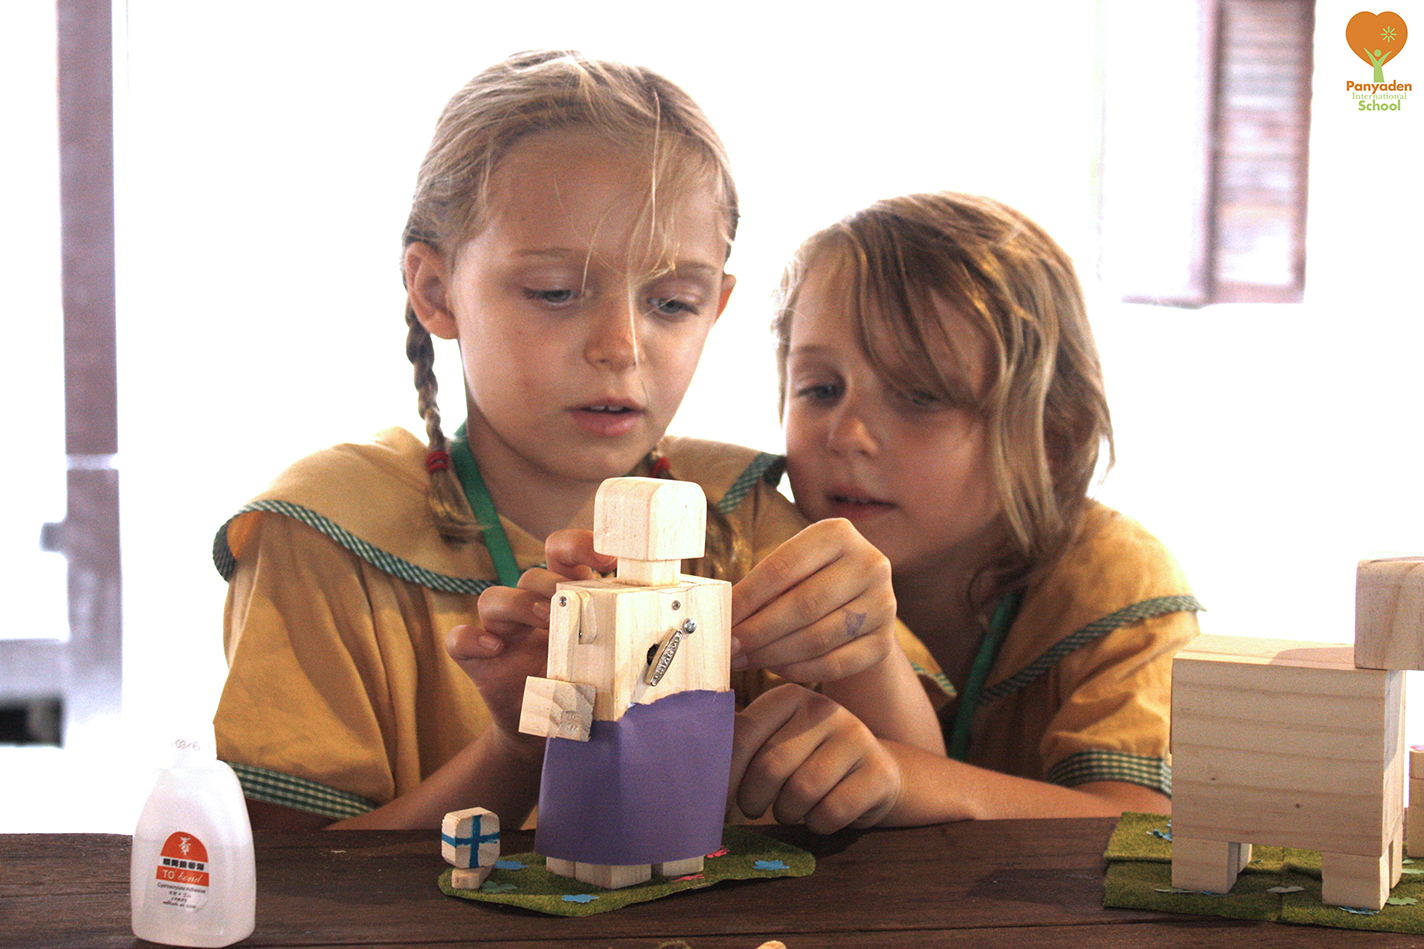 Panyaden Year 3 (Y3) music box workshop - 2 students working on their creation